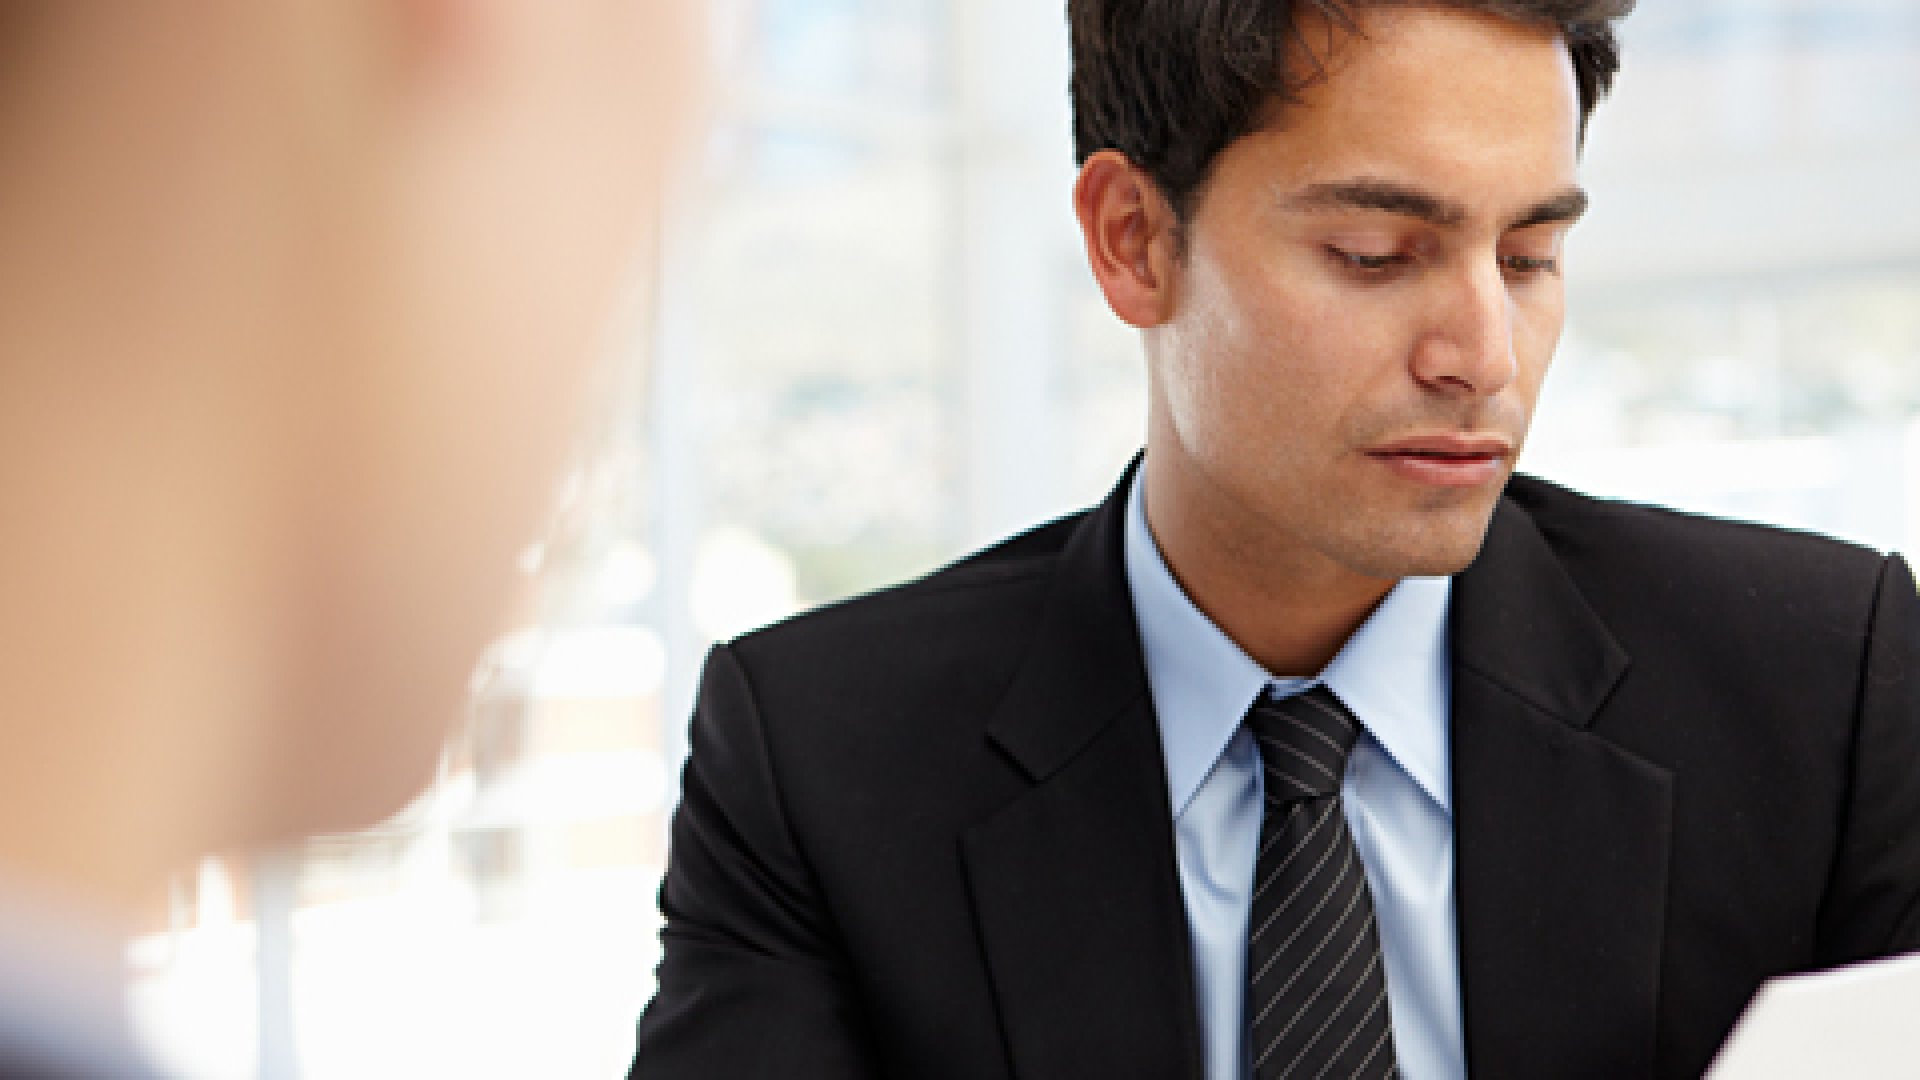 3 Dumbest Sales Job Interview Questions... and What to Ask Instead